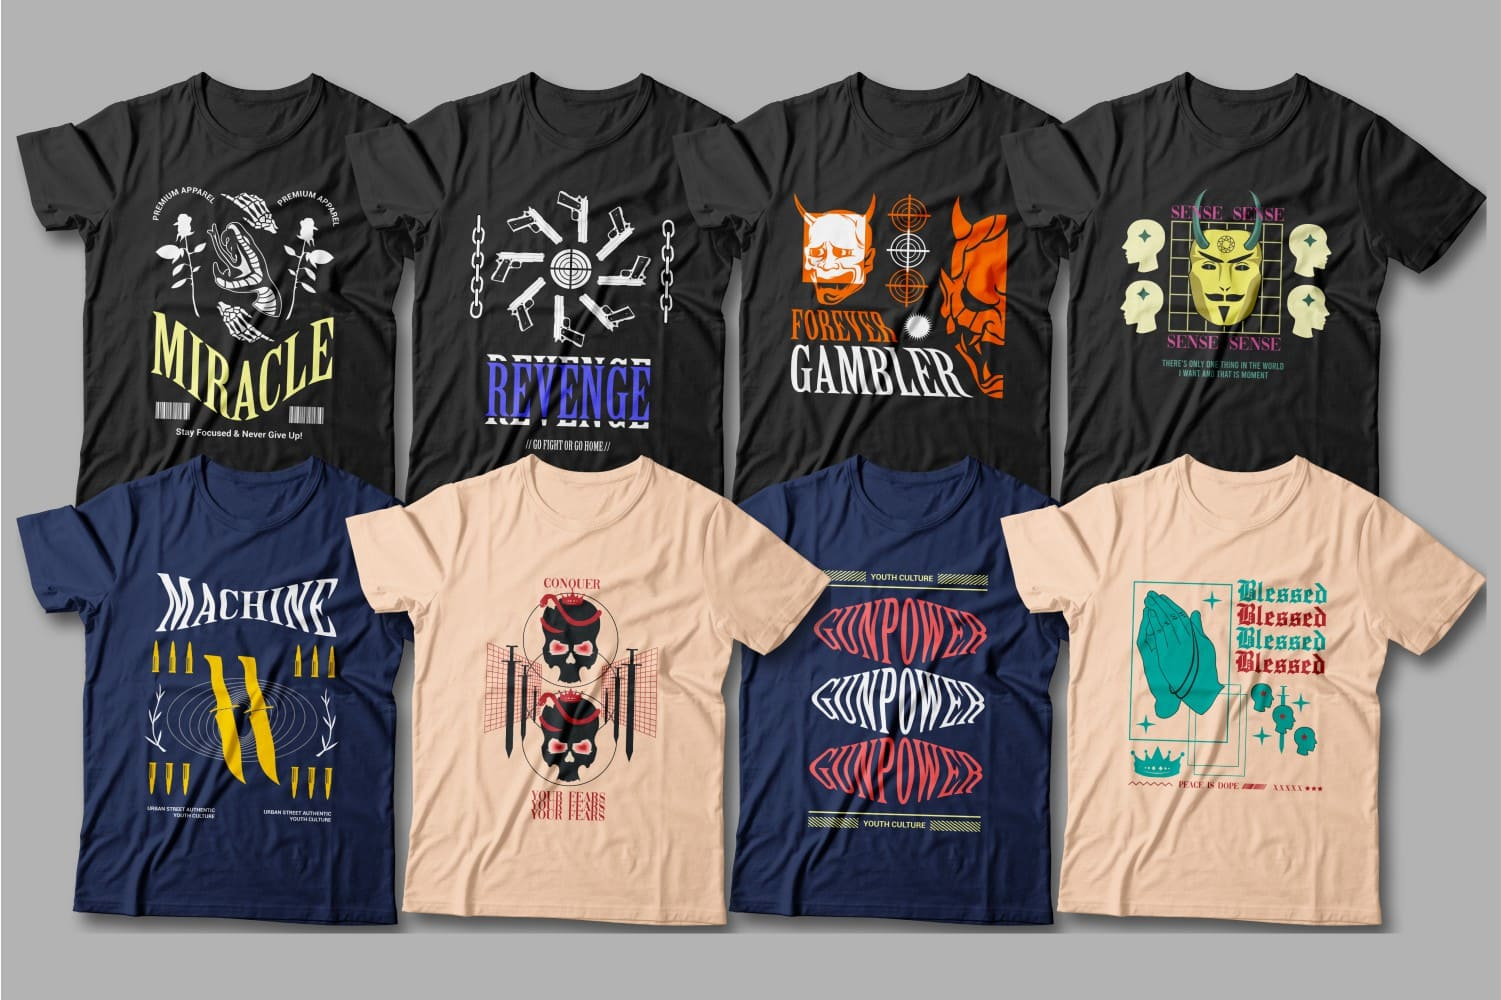 T-shirts in different colors with demon graphics.